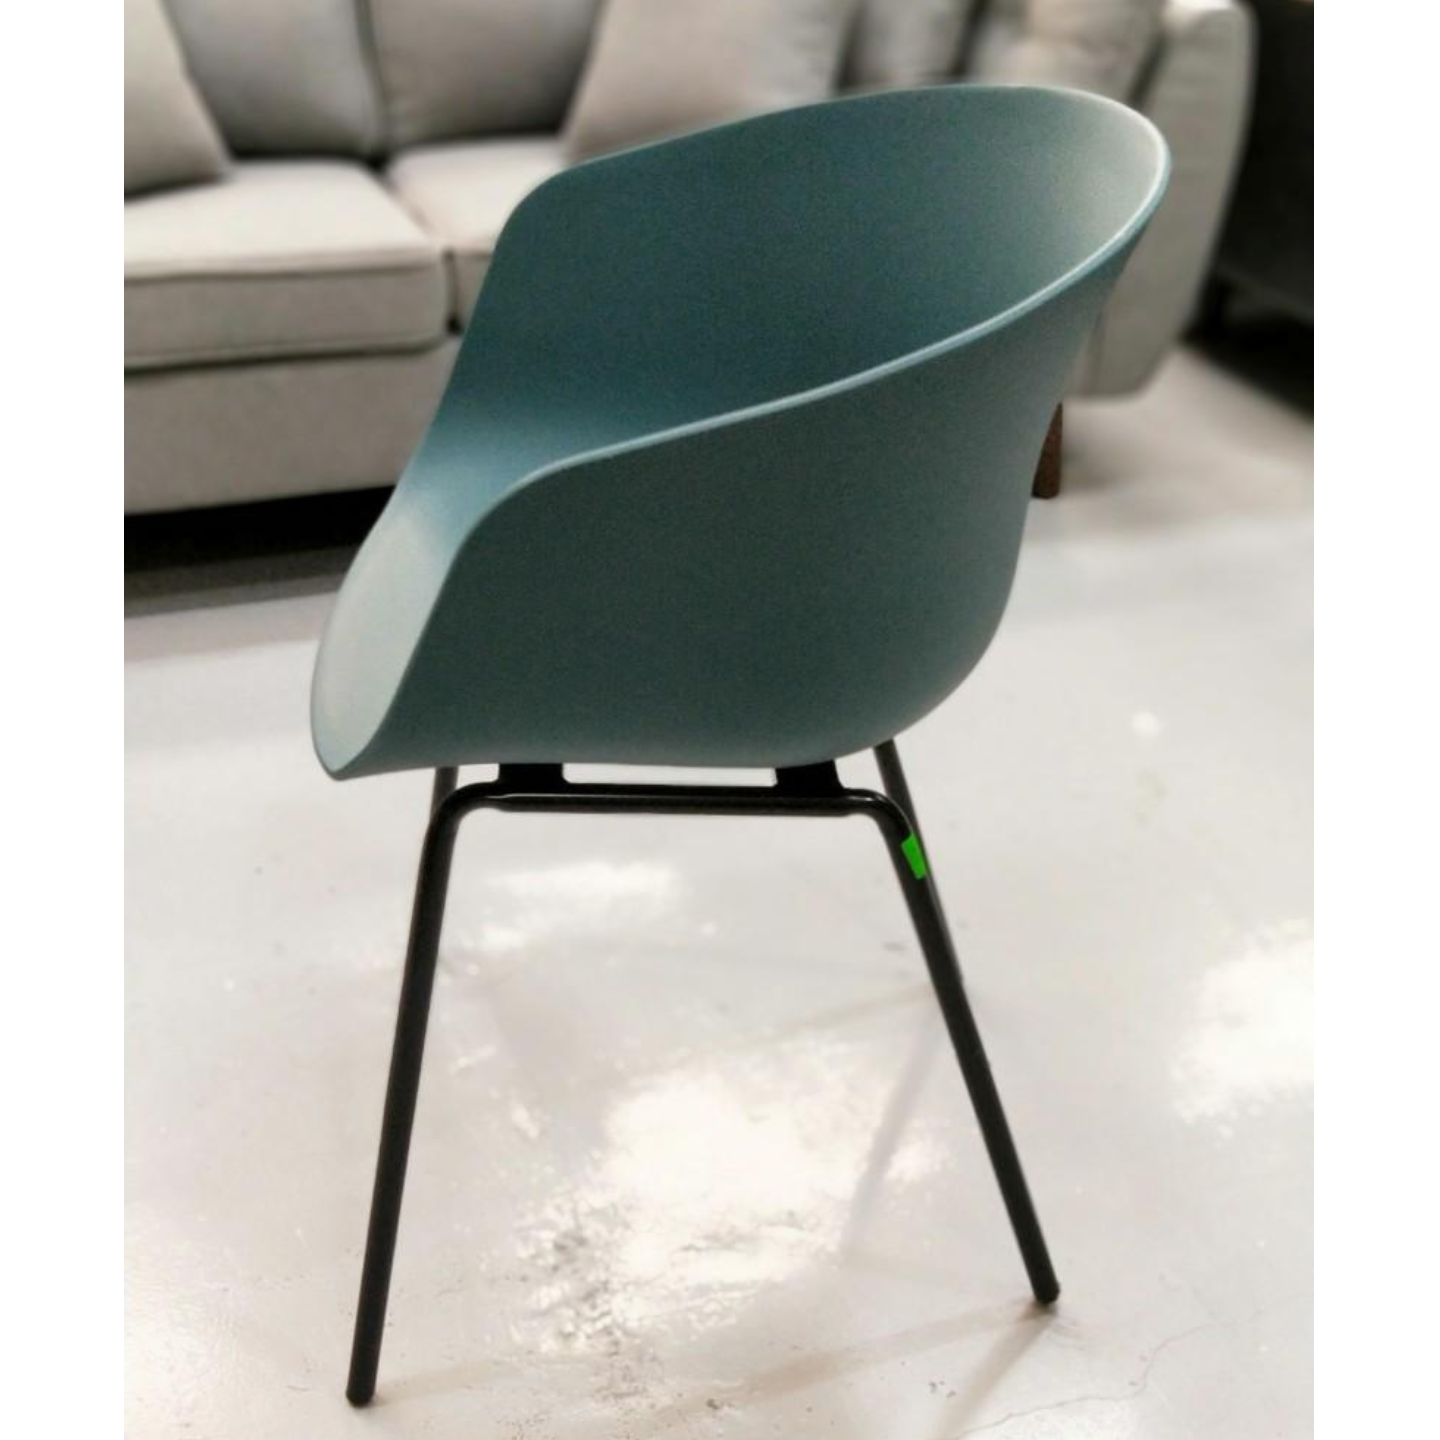 GYRO Chair in TEAL GREEN